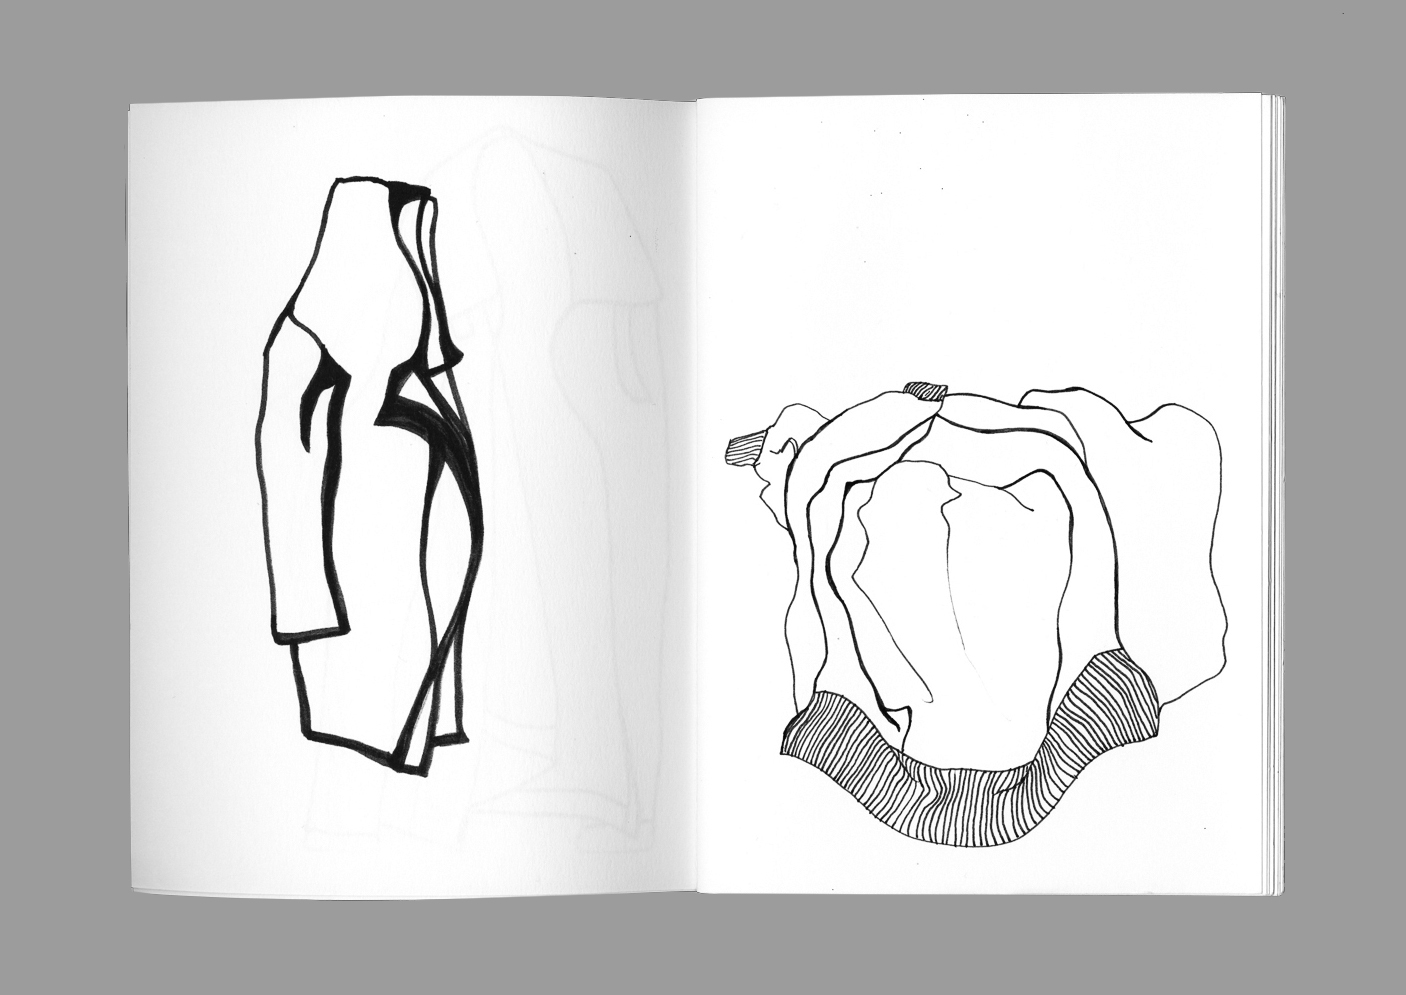 coats_sketch_04 copy